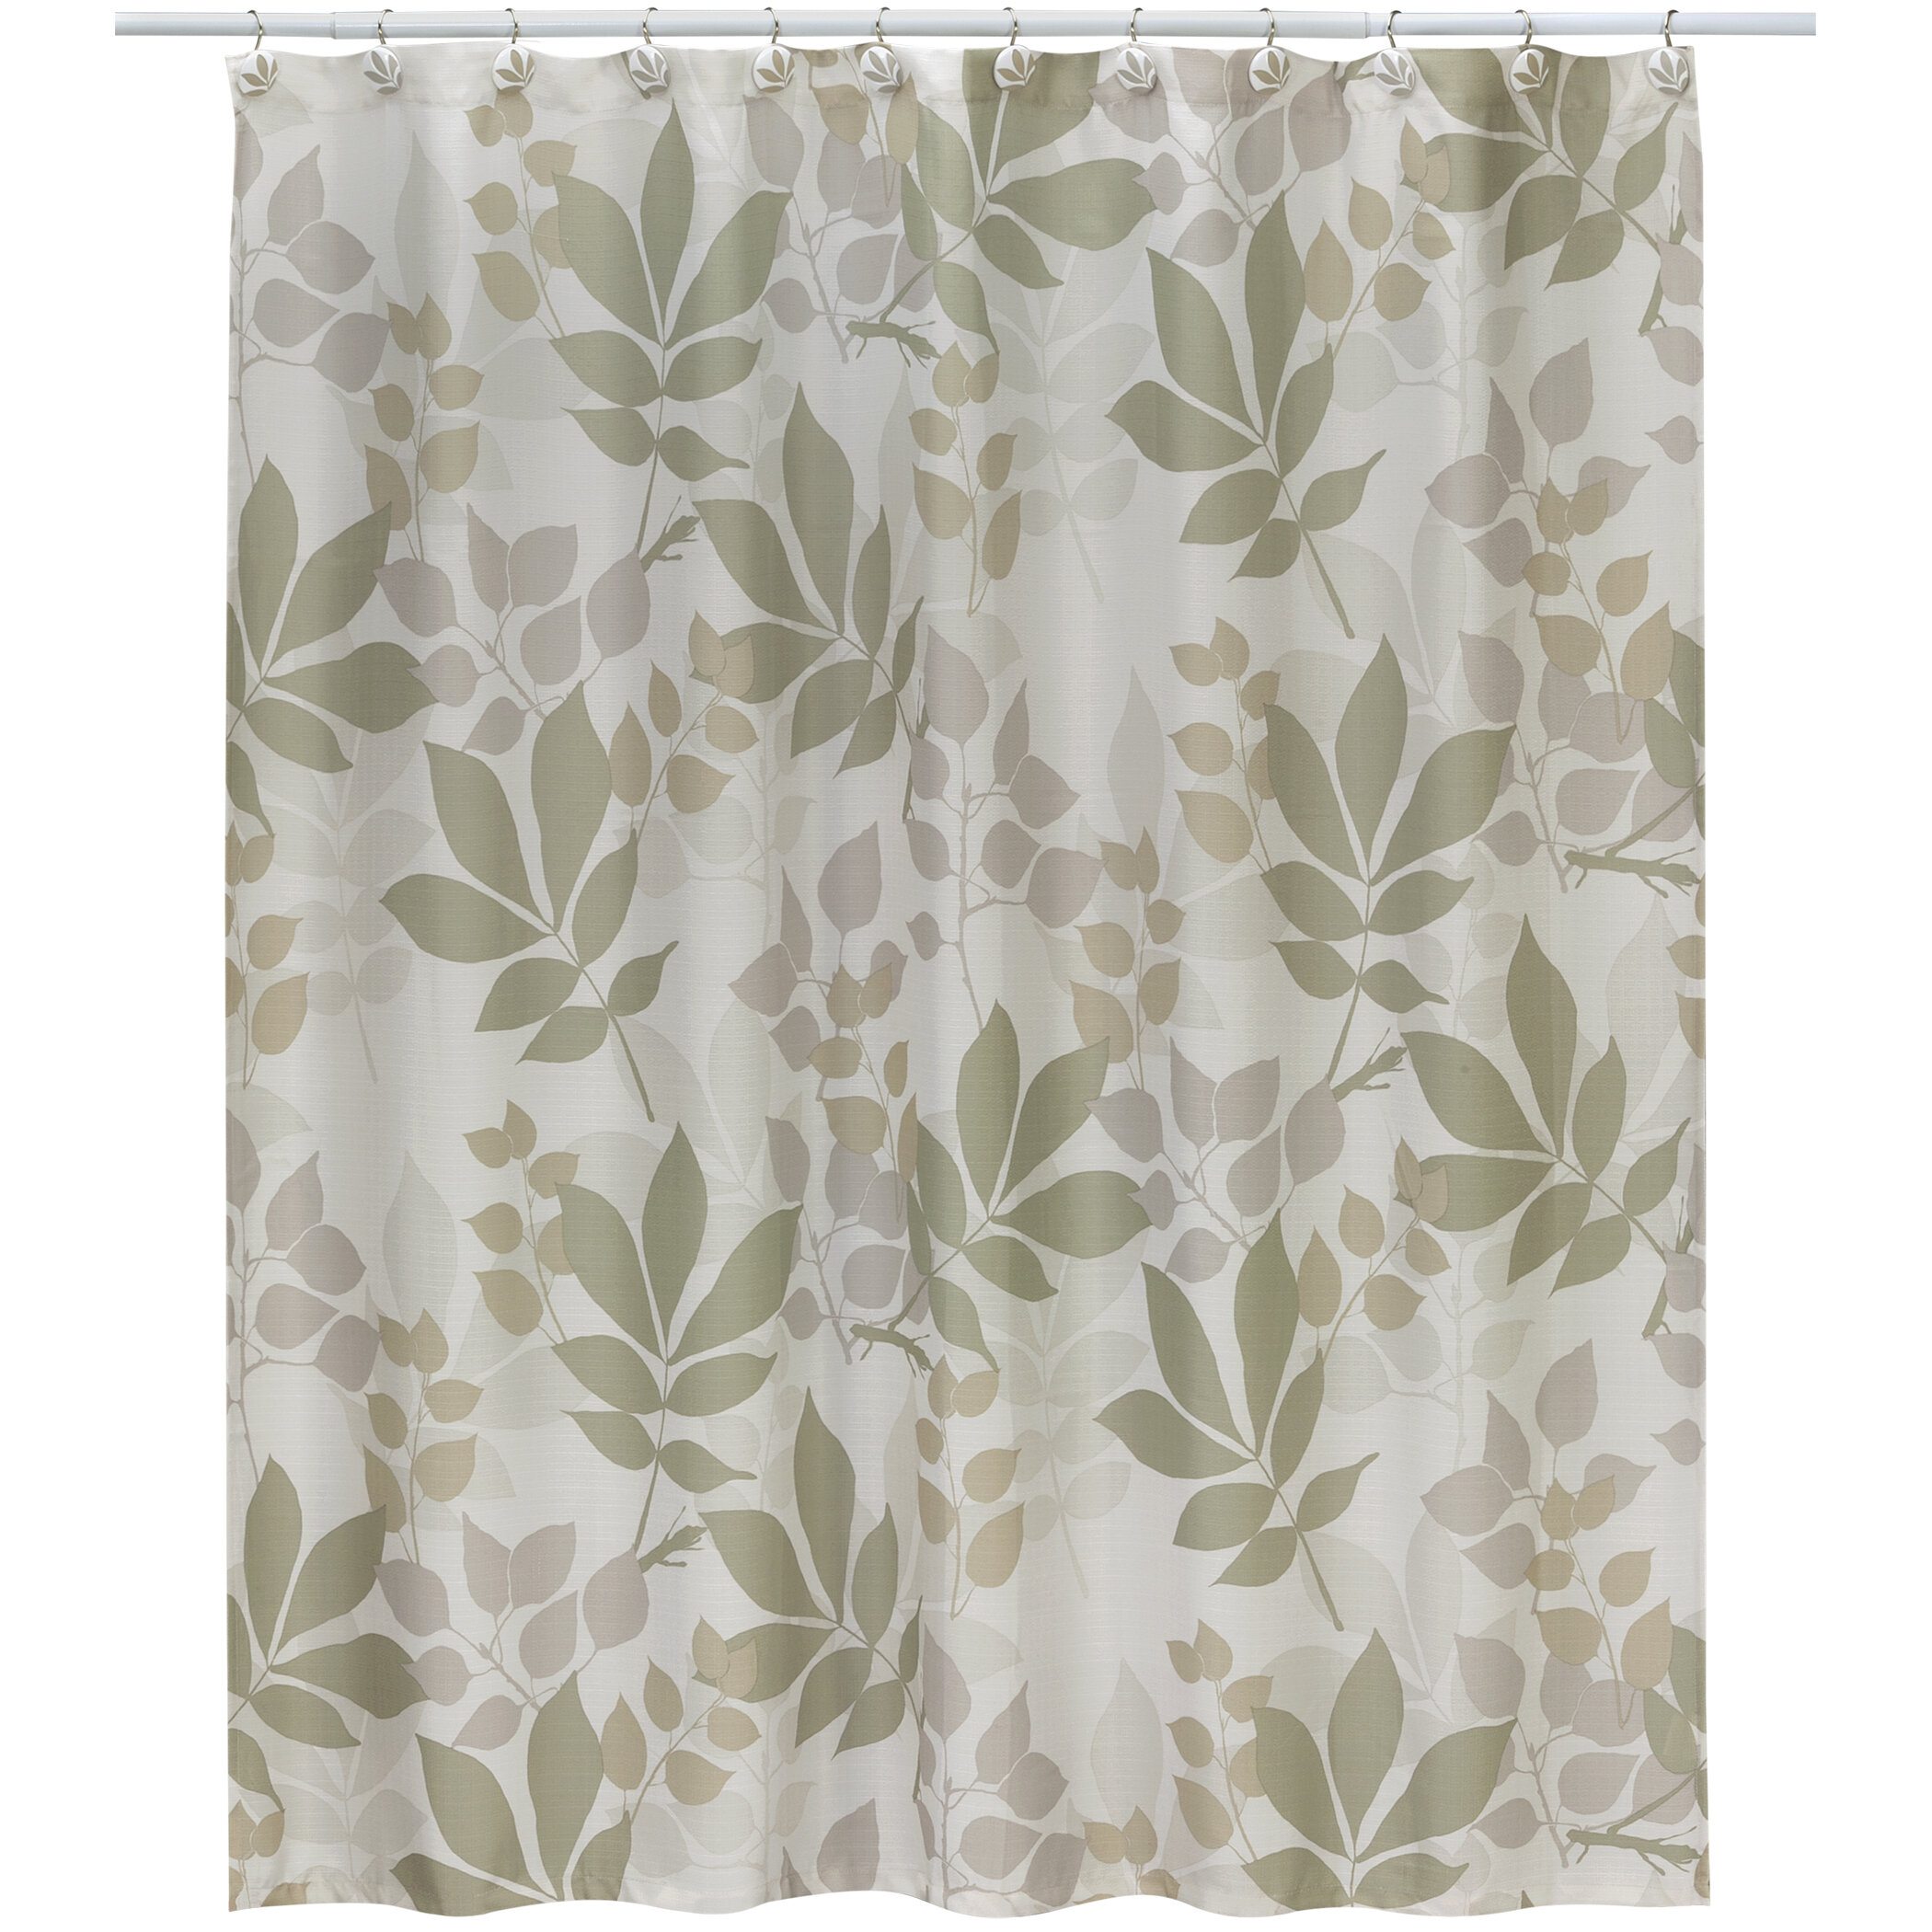 Andy Shadow Leaves 100 Cotton Shower Curtain